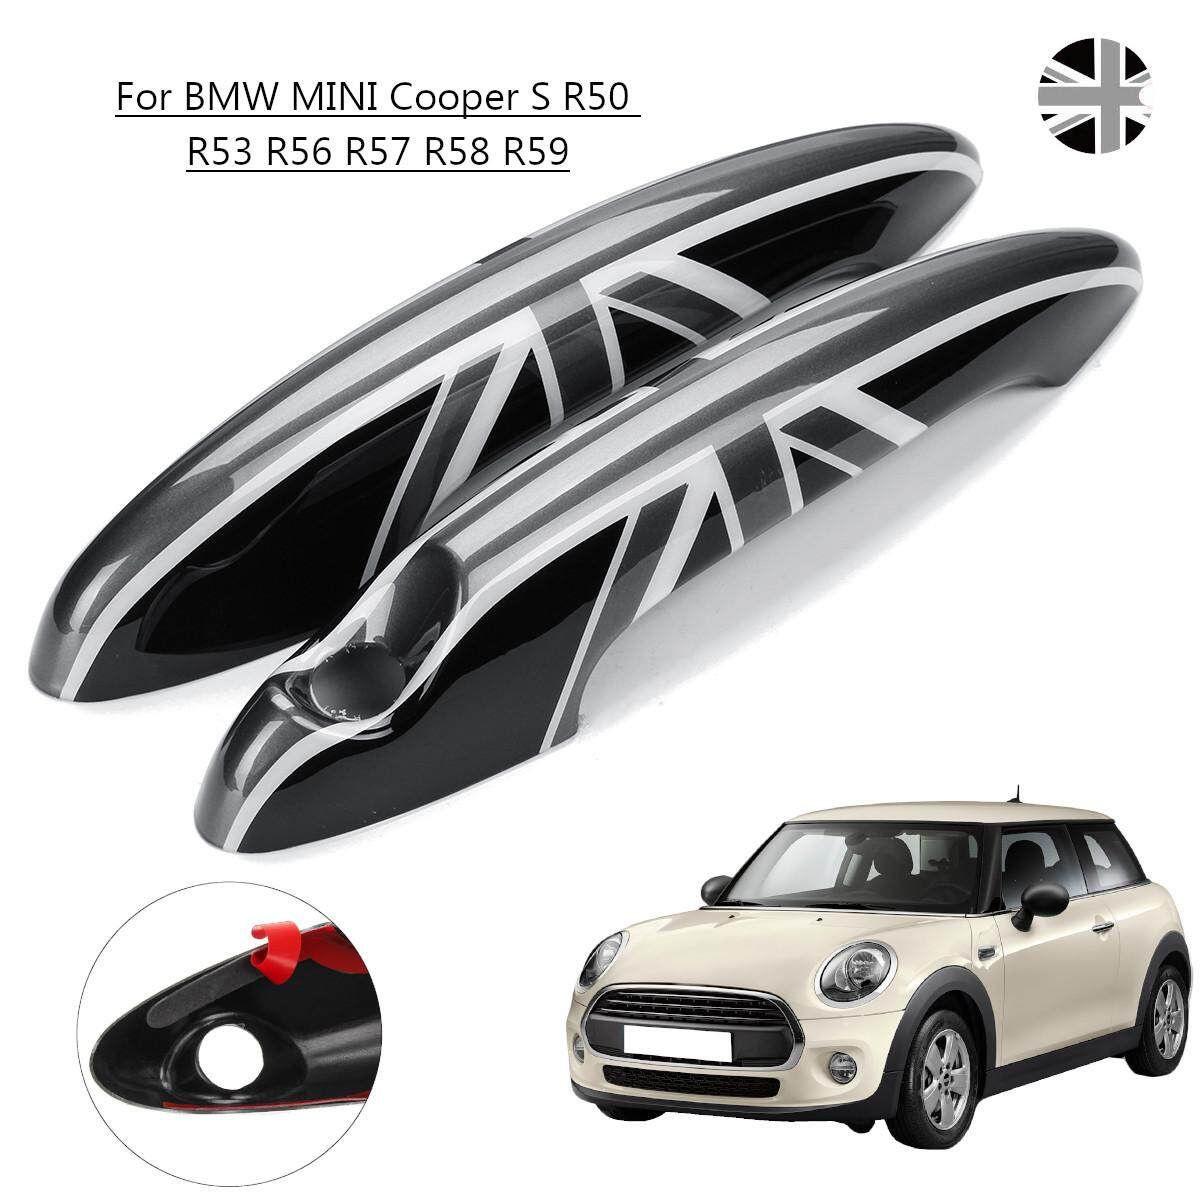 2Pcs ABS Black Car Door Handle Cover For MINI Cooper S R50 R53 R56 R57 R58  R59